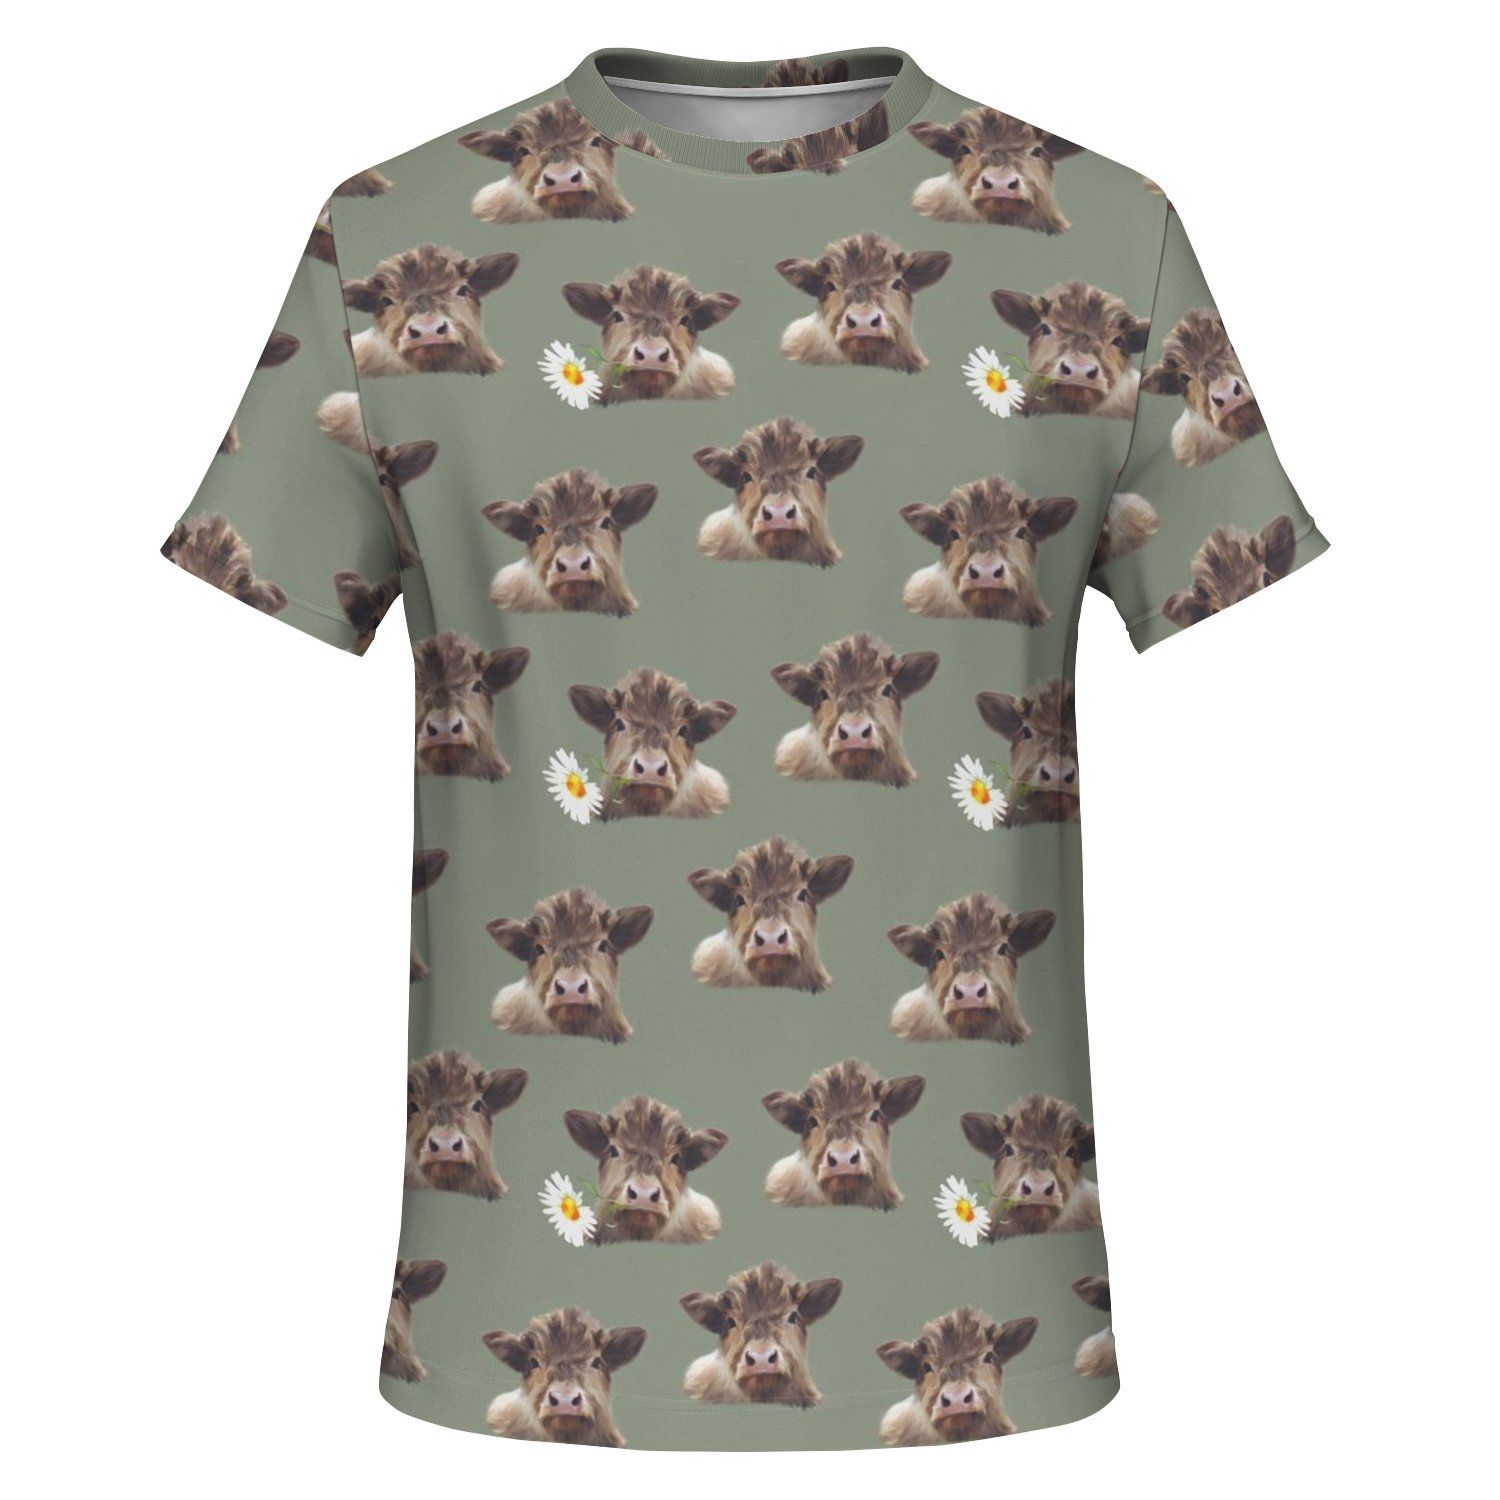 Cow and Flowers T-shirt - Fair Dinkum Fashion